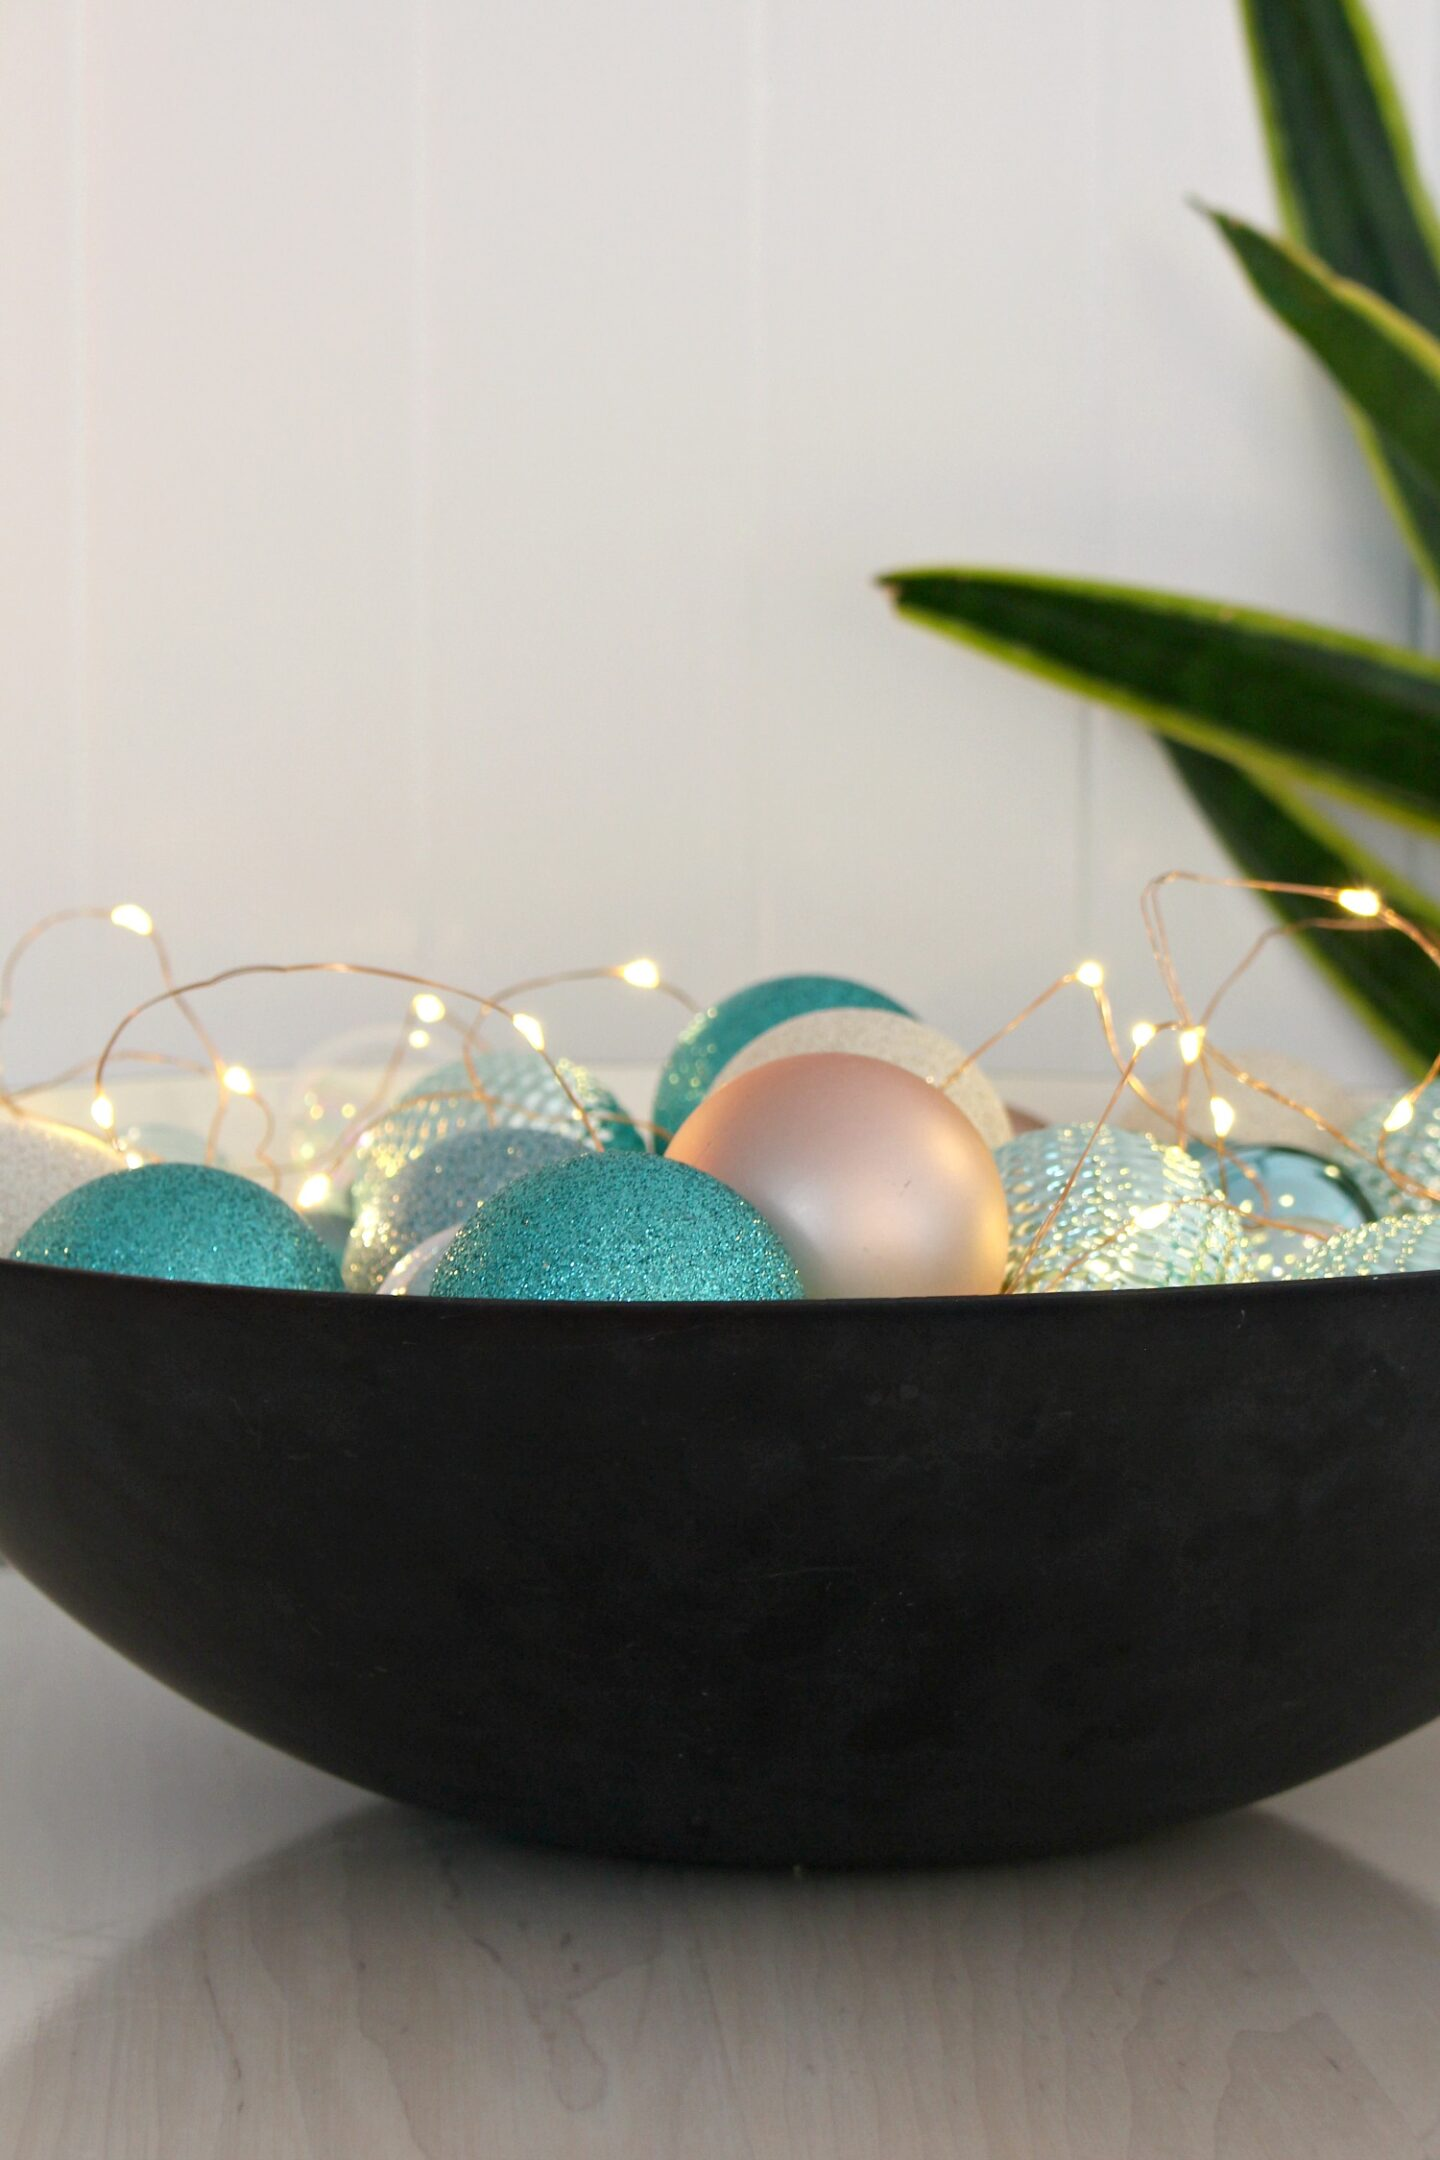 Krenit Bowl with Ornaments